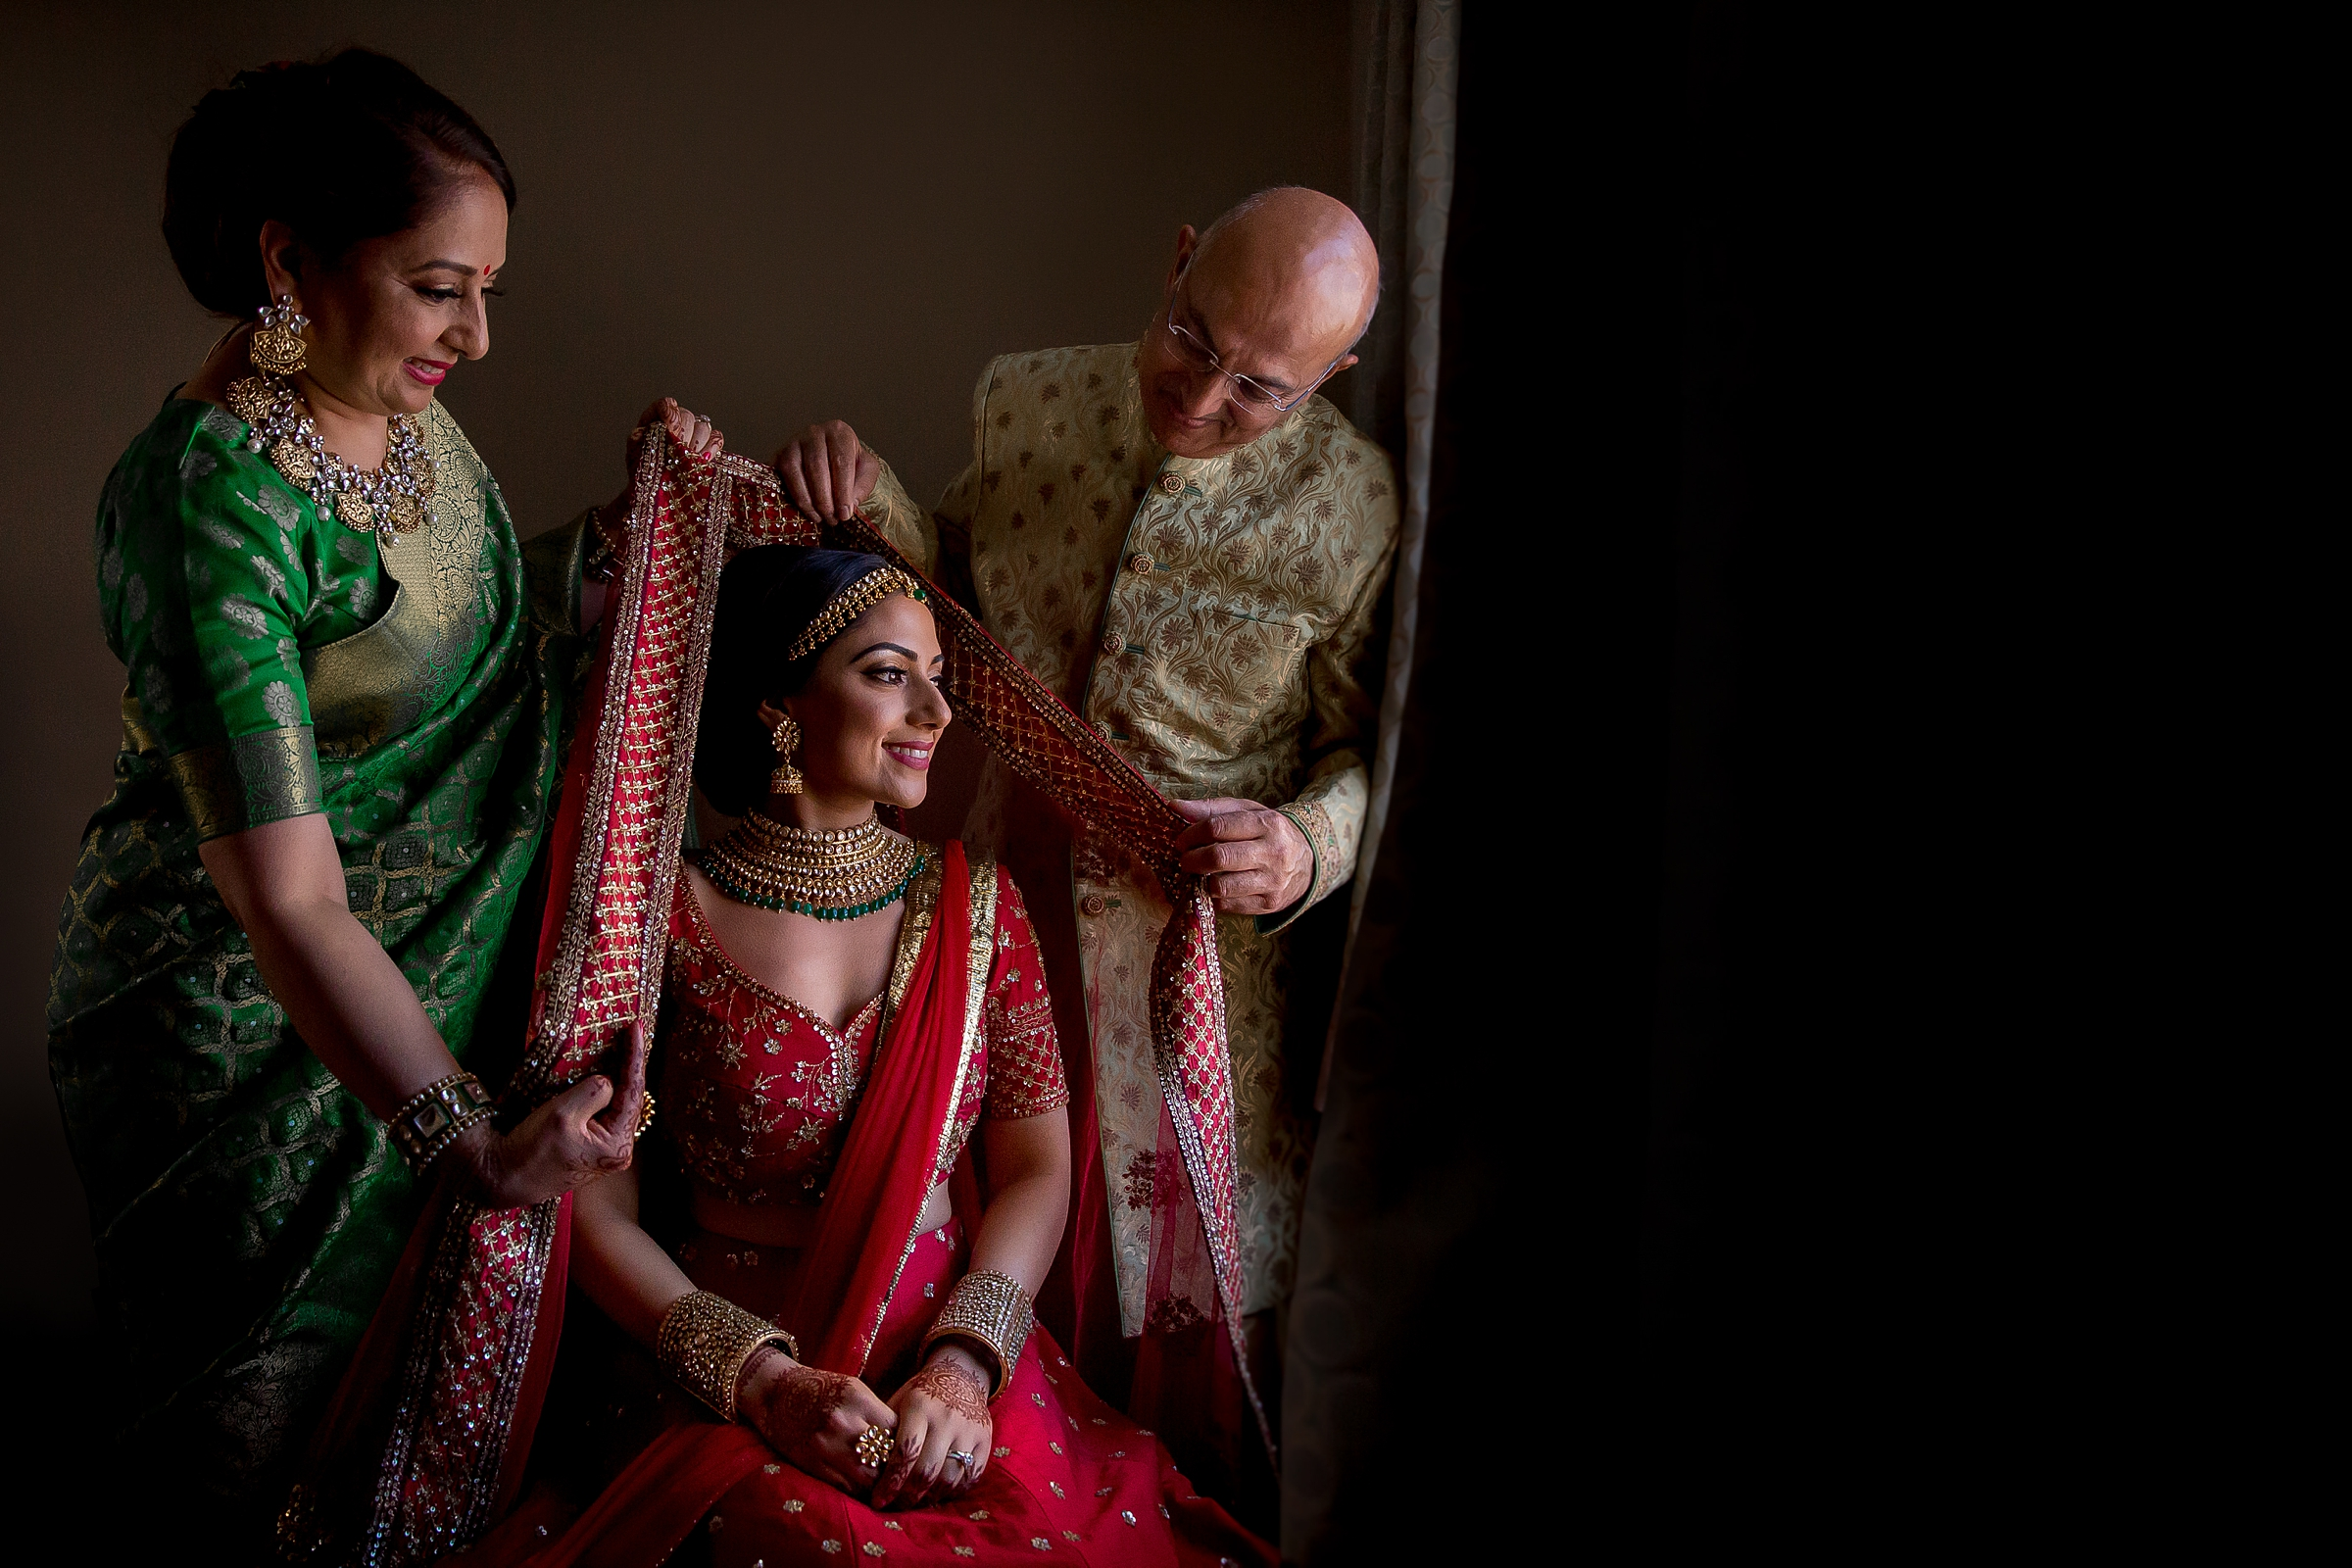 Indian bride before wedding with parents - photographed by Apresh Chavda - London